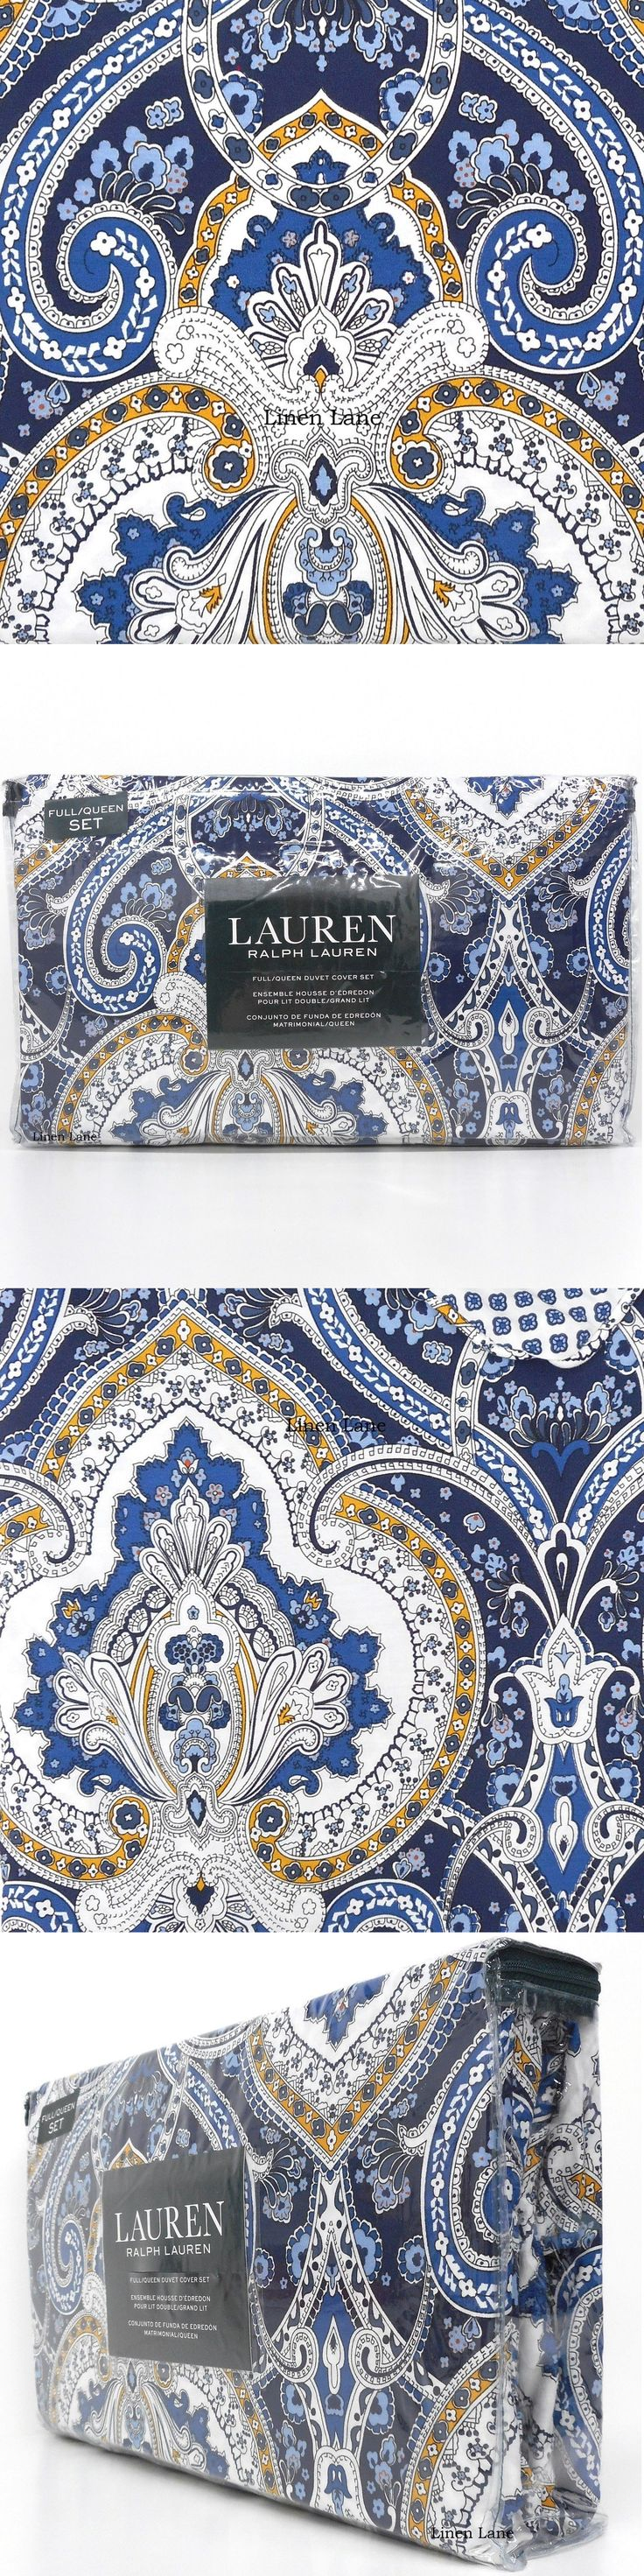 Duvet Covers and Sets 37644: Ralph Lauren Floral Queen Duvet Cover Set Cotton Nwt Blue White Gold Medallion -> BUY IT NOW ONLY: $124 on eBay!